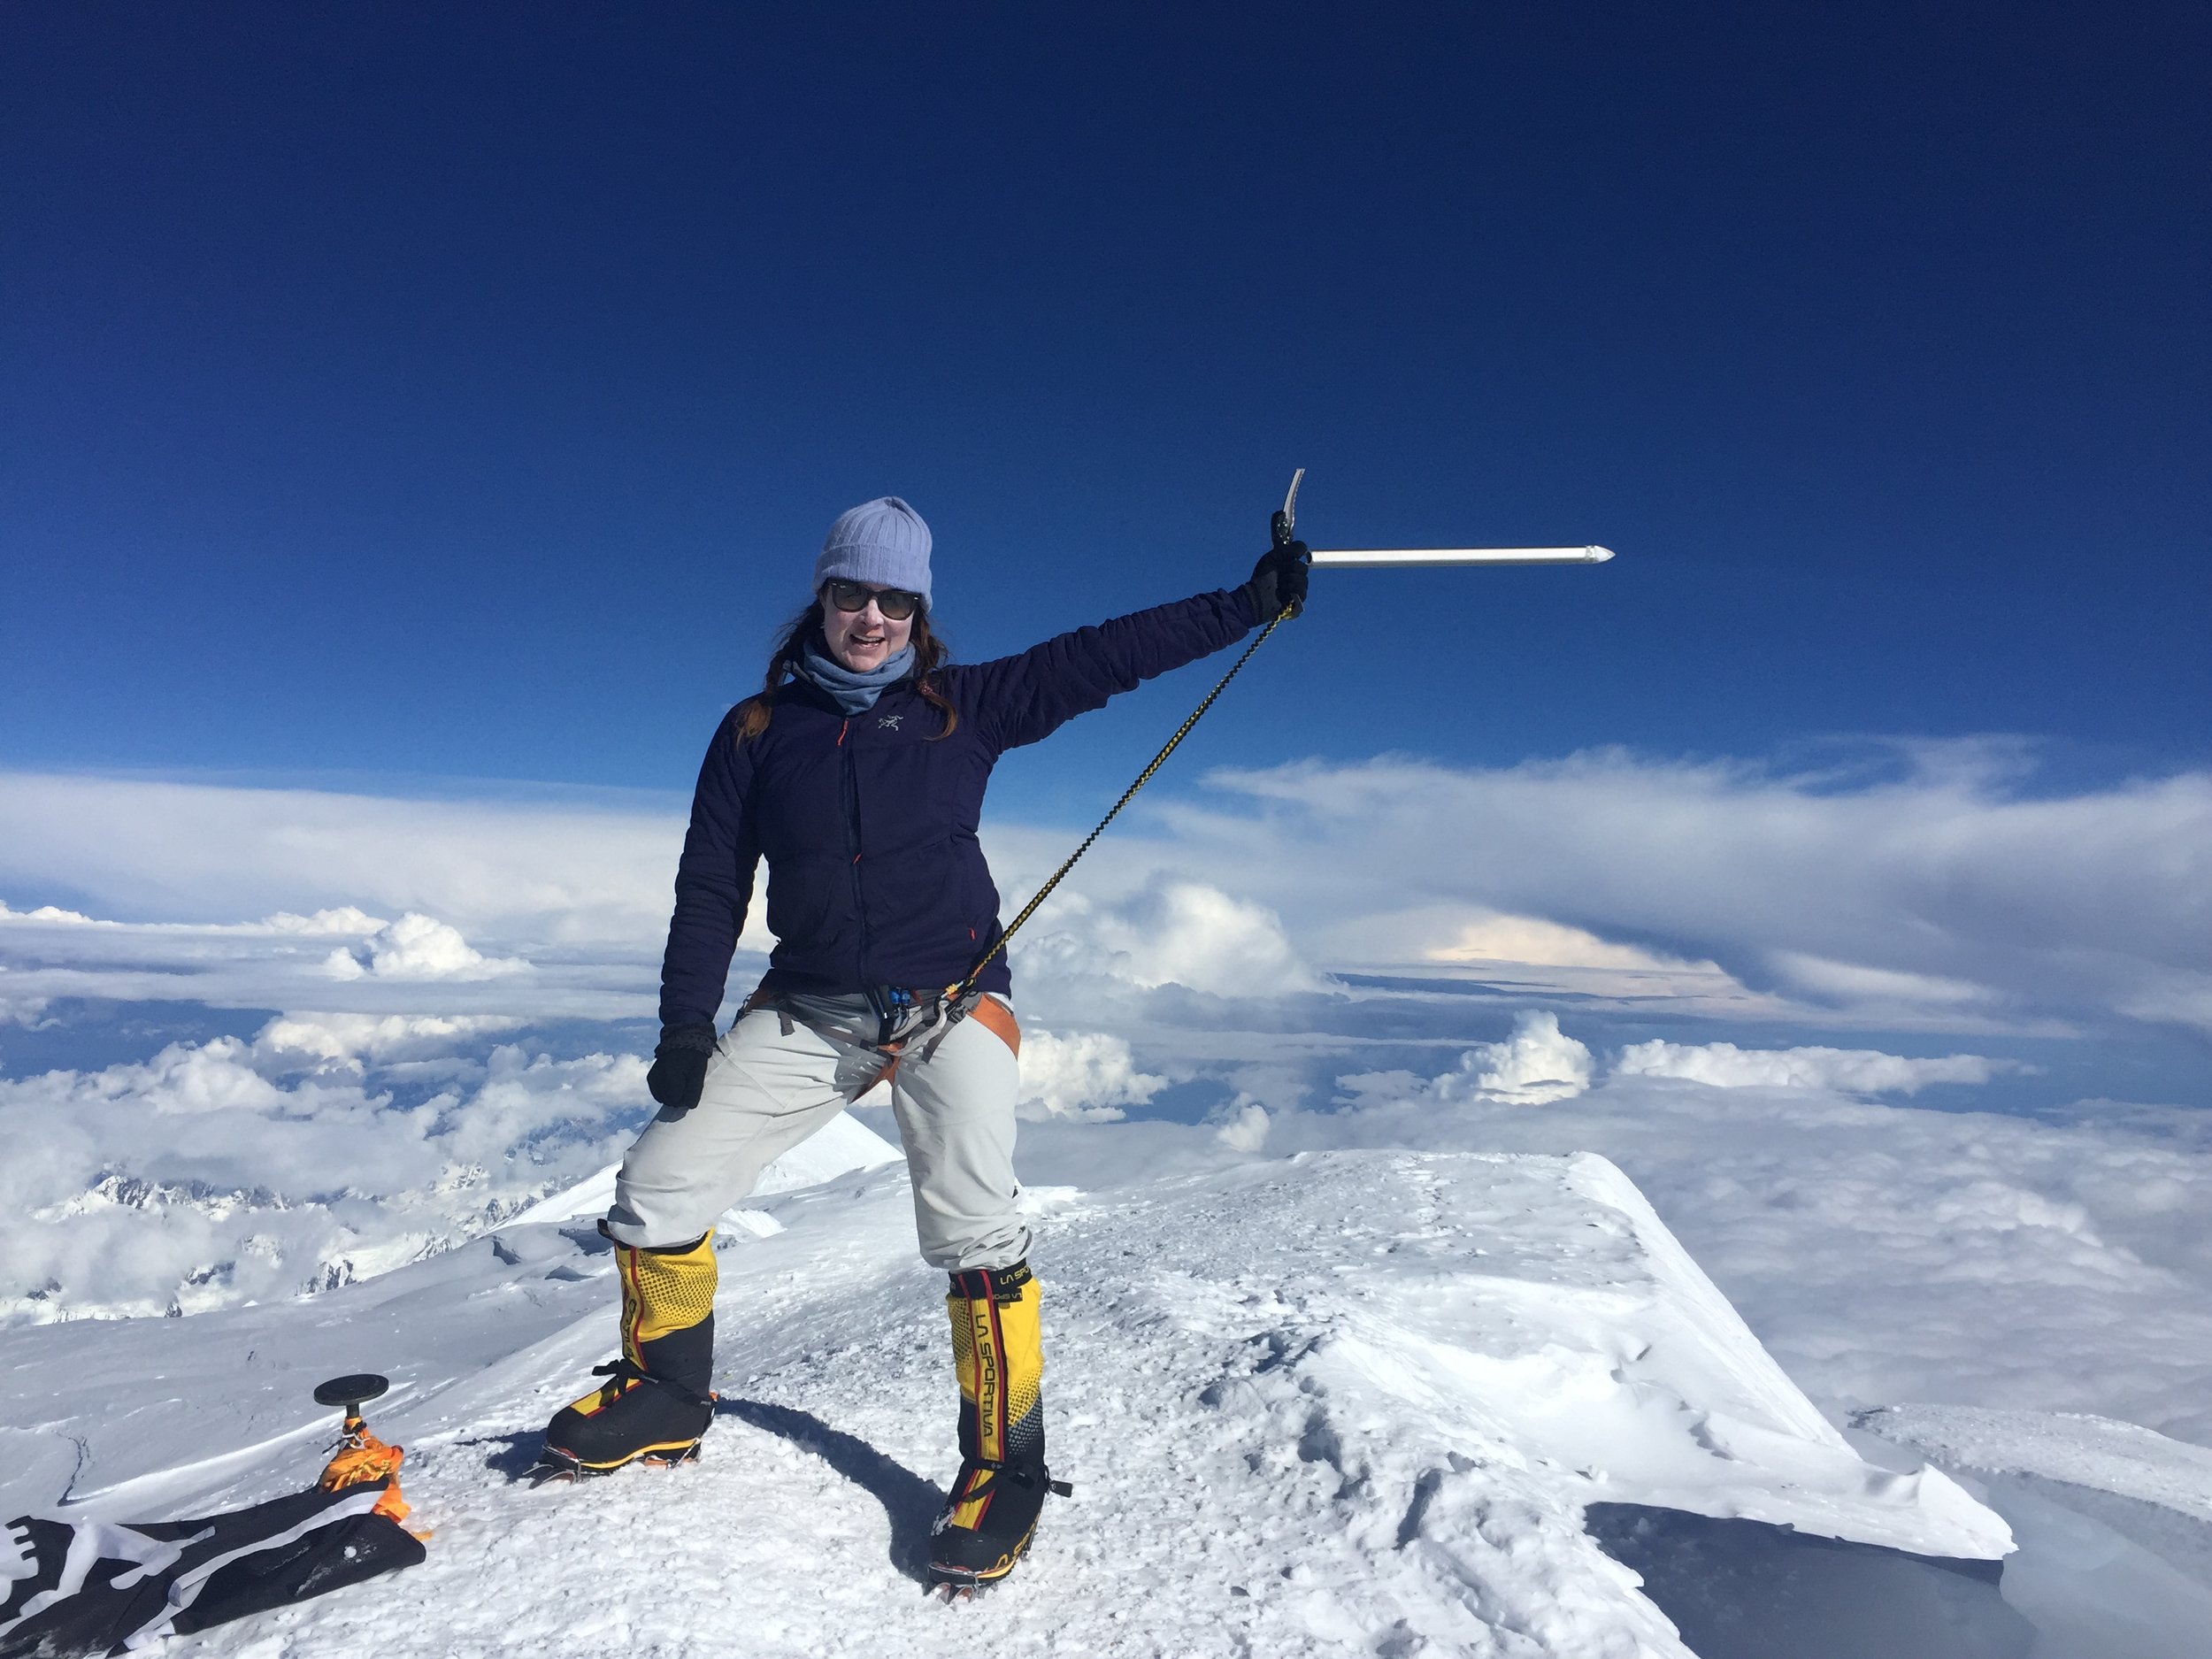 Denali - Location: North AmericaHeight: 20,310 ft / 6,190 mSummit Date: June 4th, 2017Route: West ButtressTrip Length: 21 daysCompany: Alaska Mountaineering School